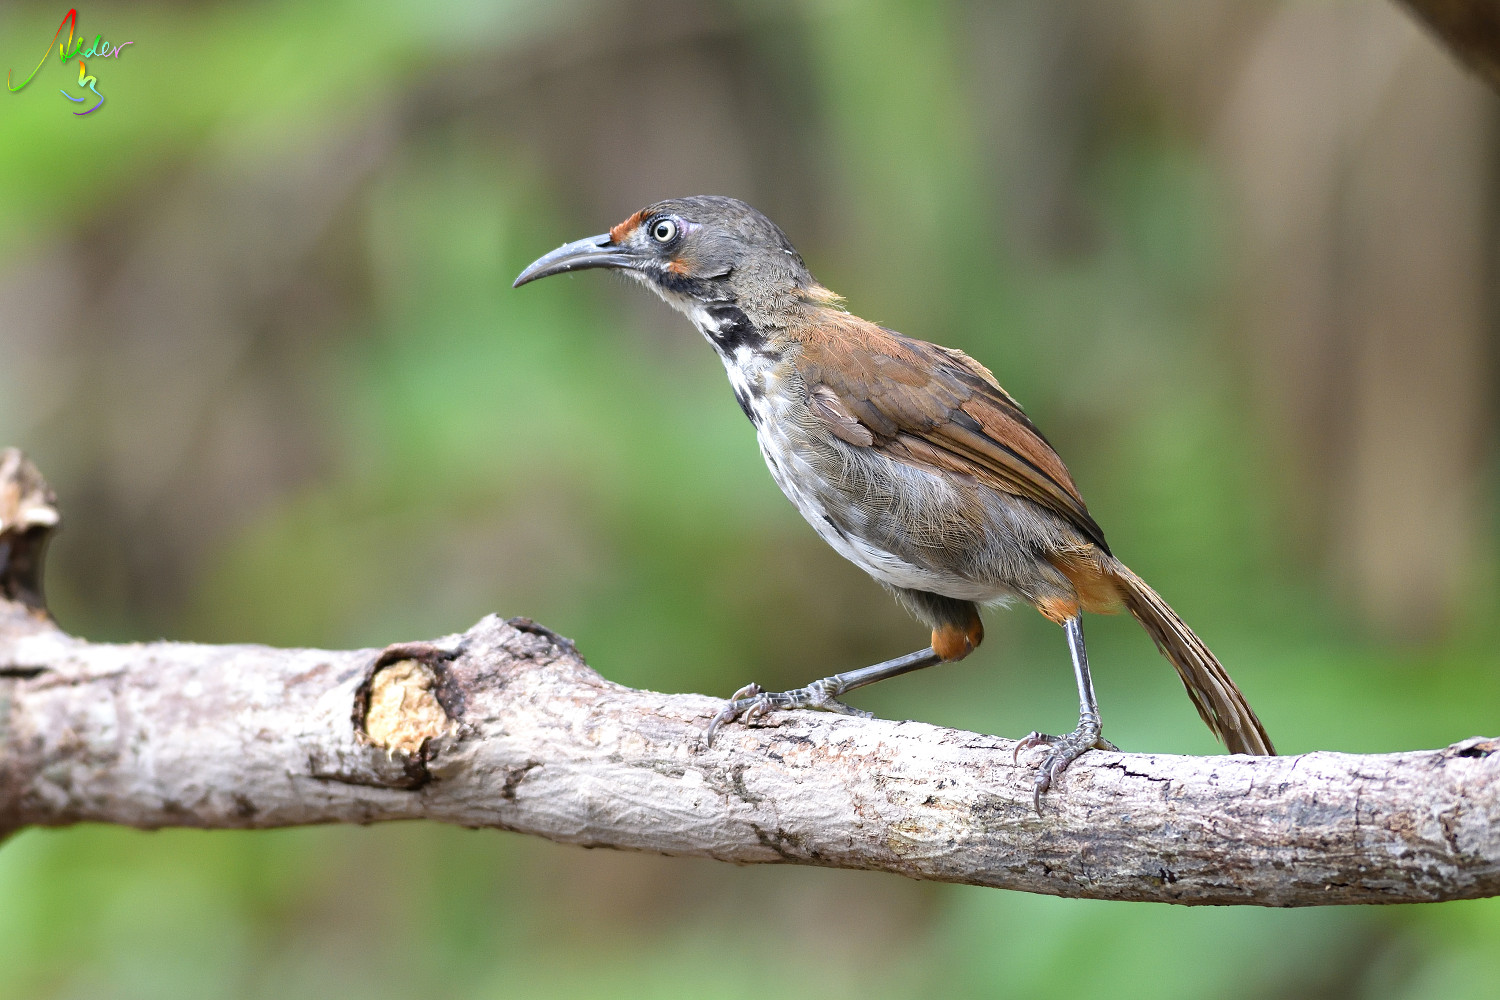 Rusty-cheeked_Scimitar_Babbler_5340